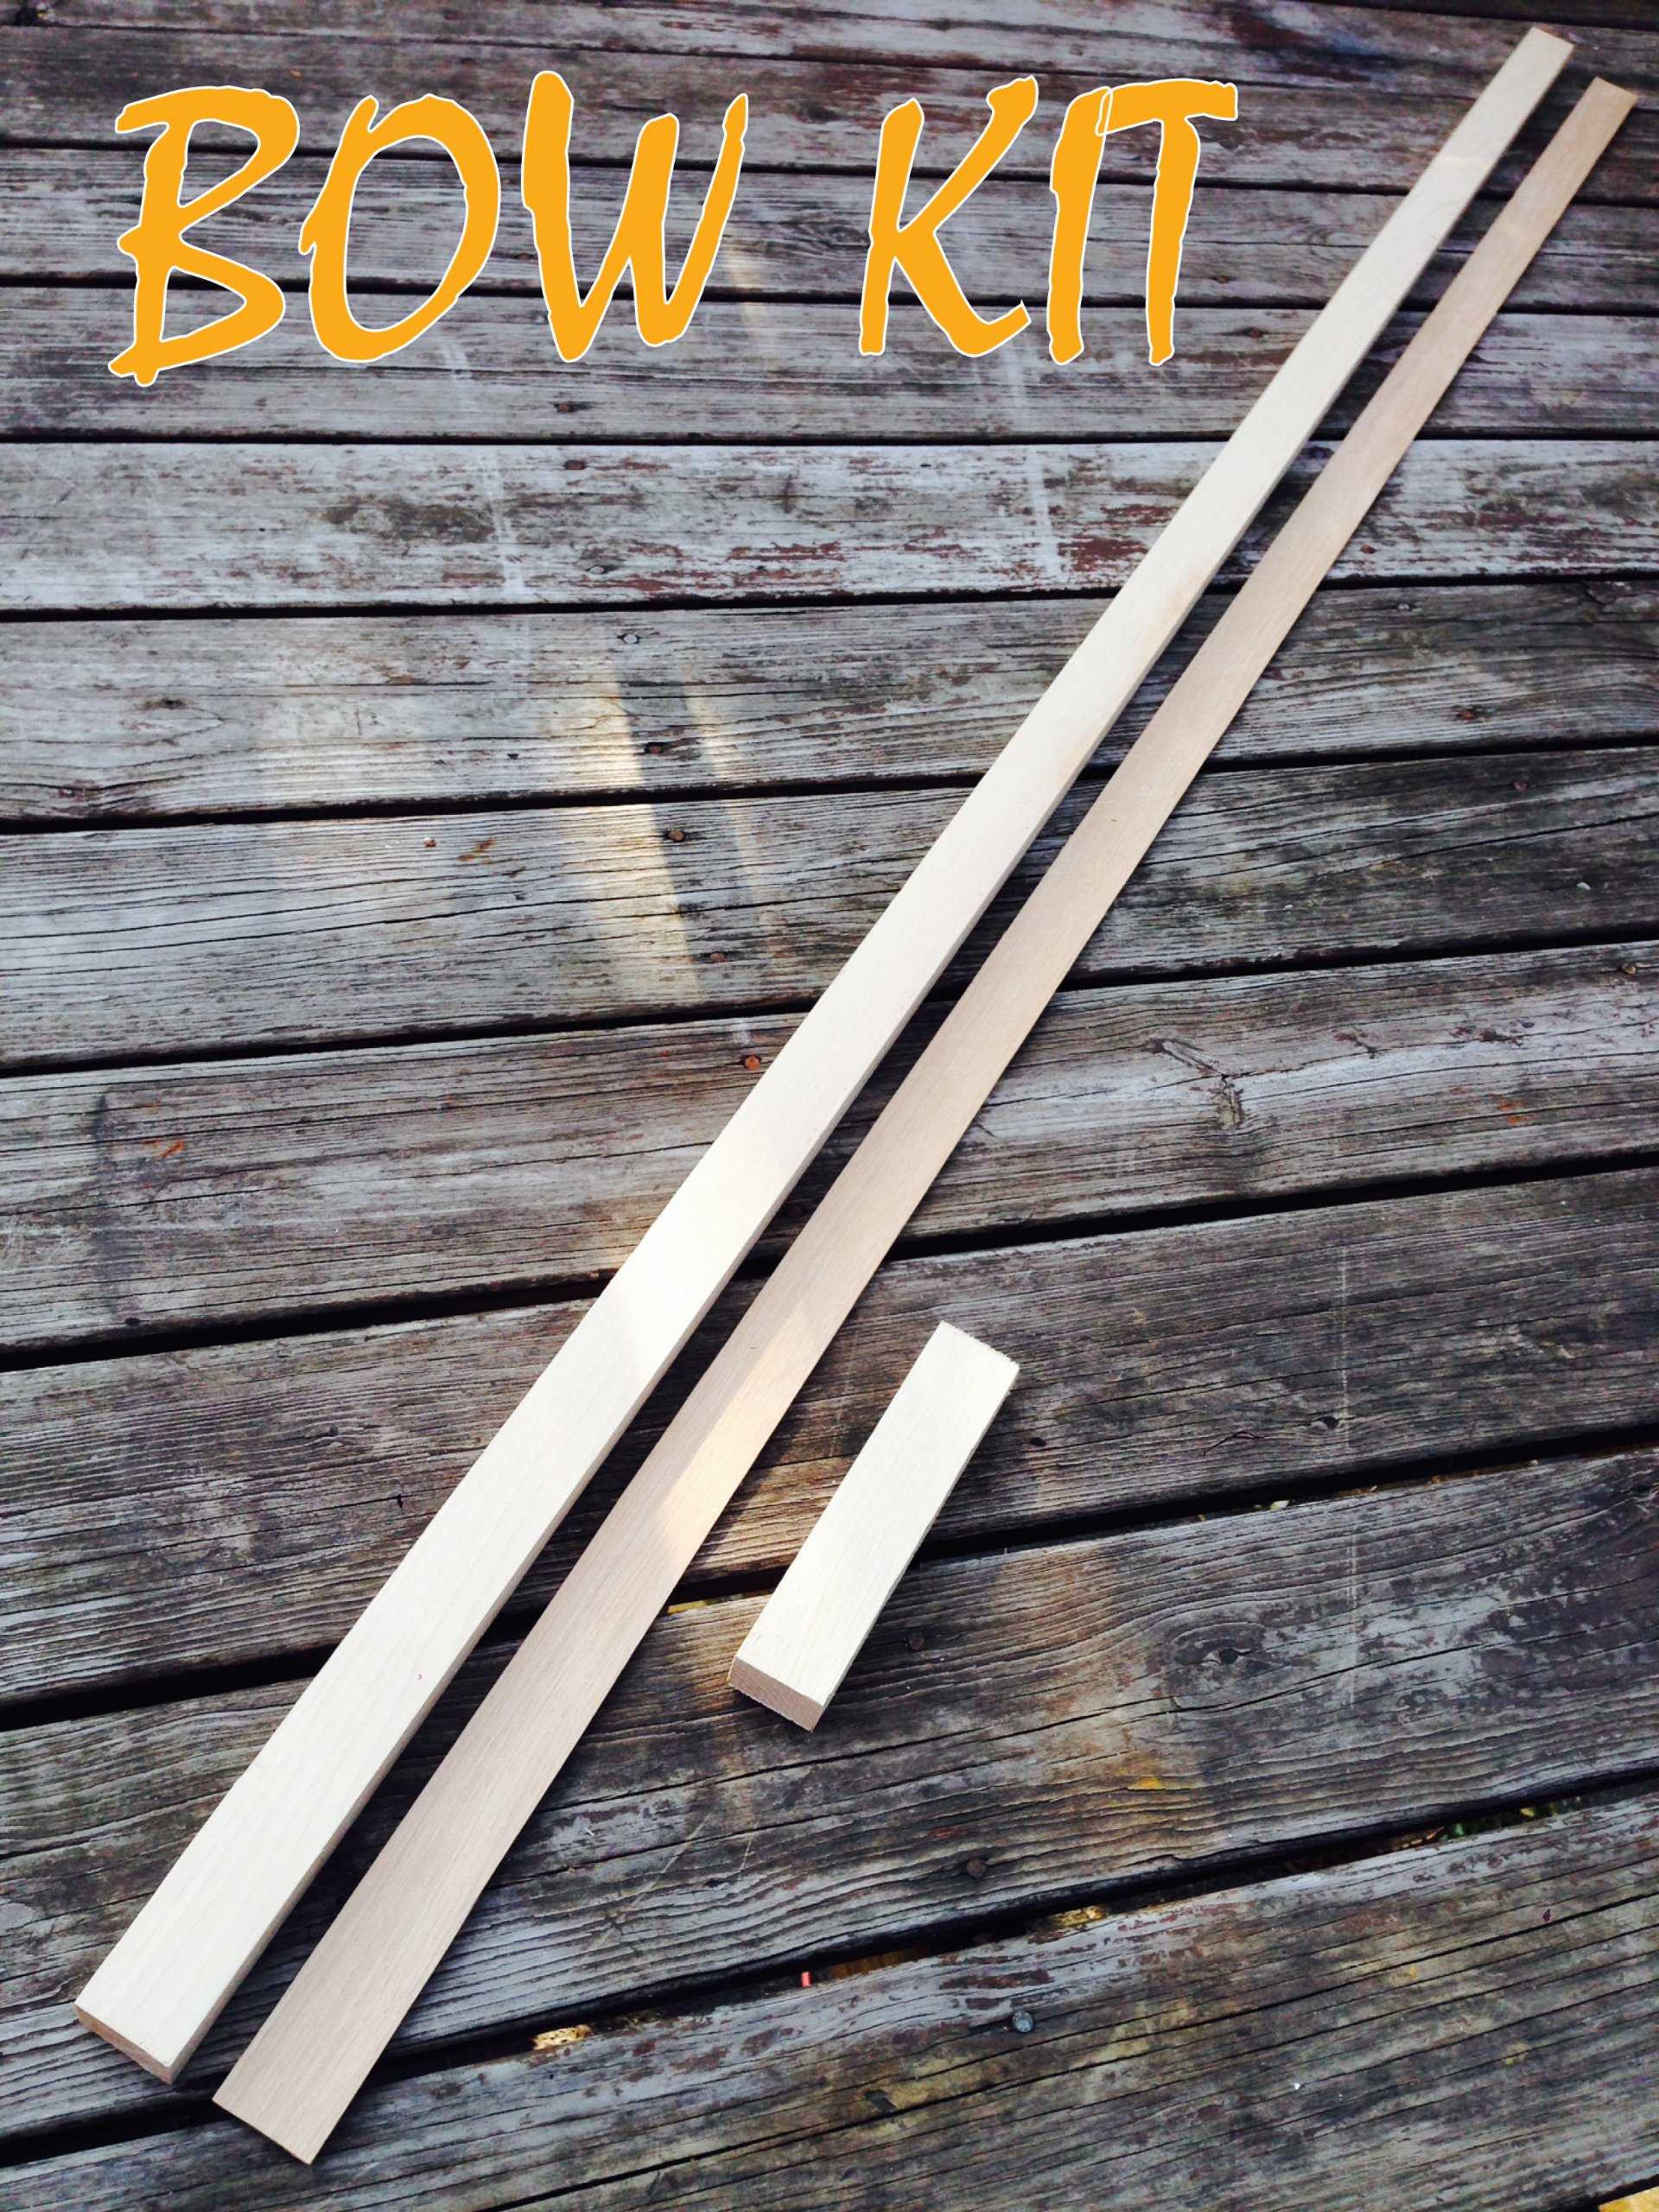 Hickory Bow Kit! Premium Grain! Perfect for Hickory Bows! Custom Wood Archery!